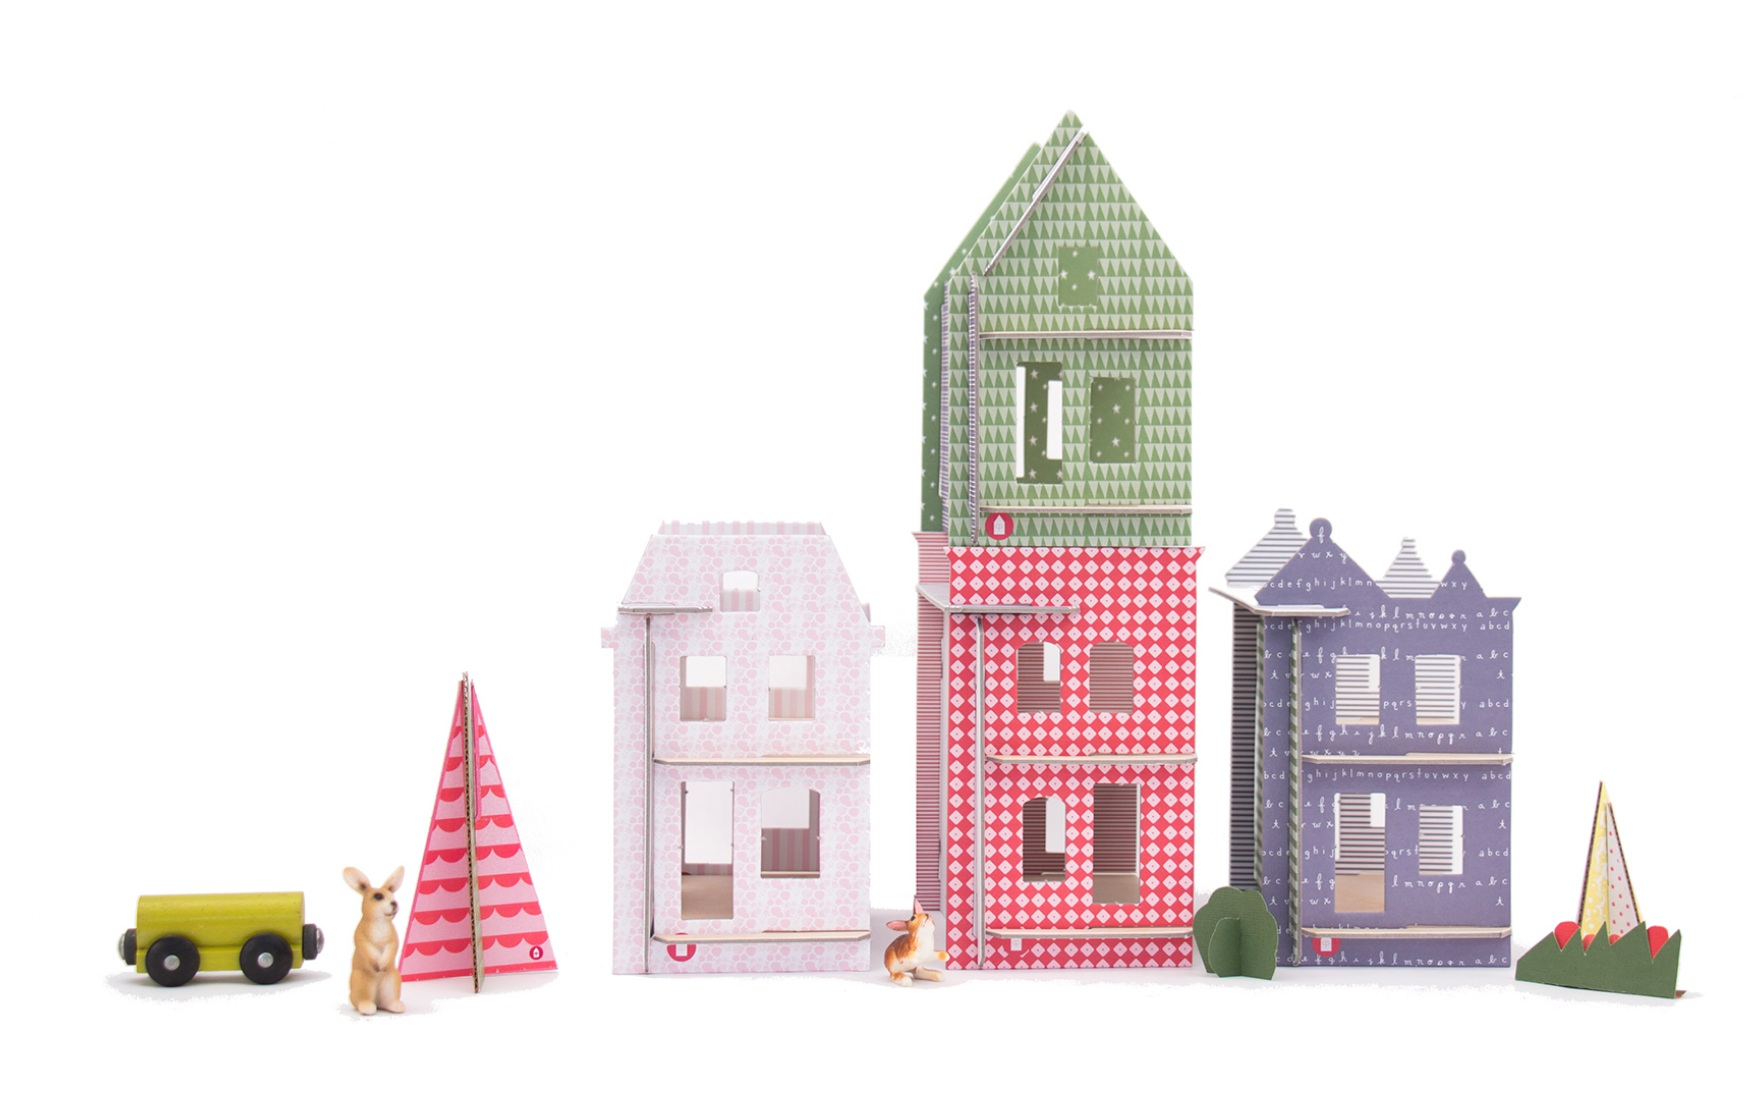 Lille Huset: The diy dollhouse kits we wish we had as kids.